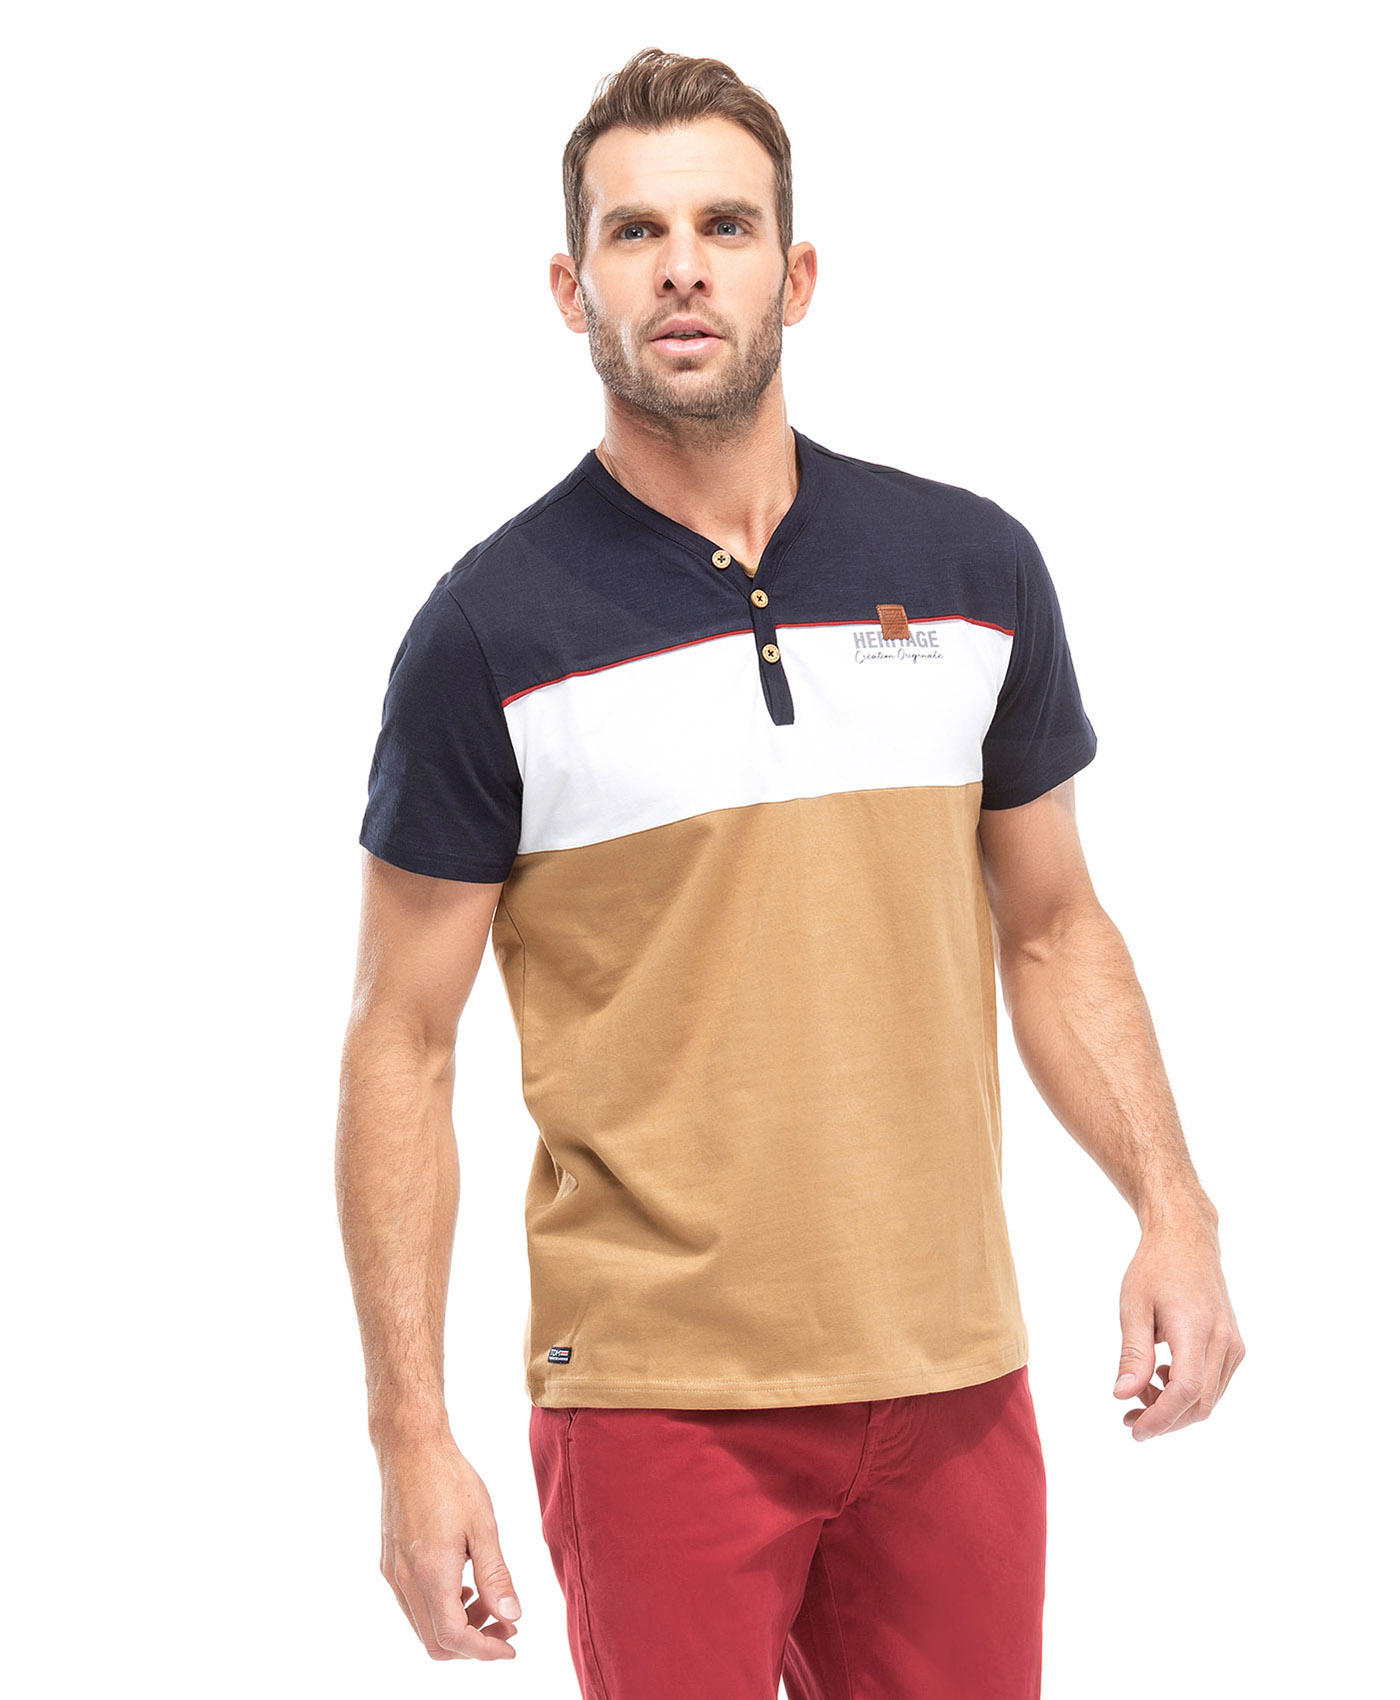 Tee-shirt coton homme - Mode marine Homme